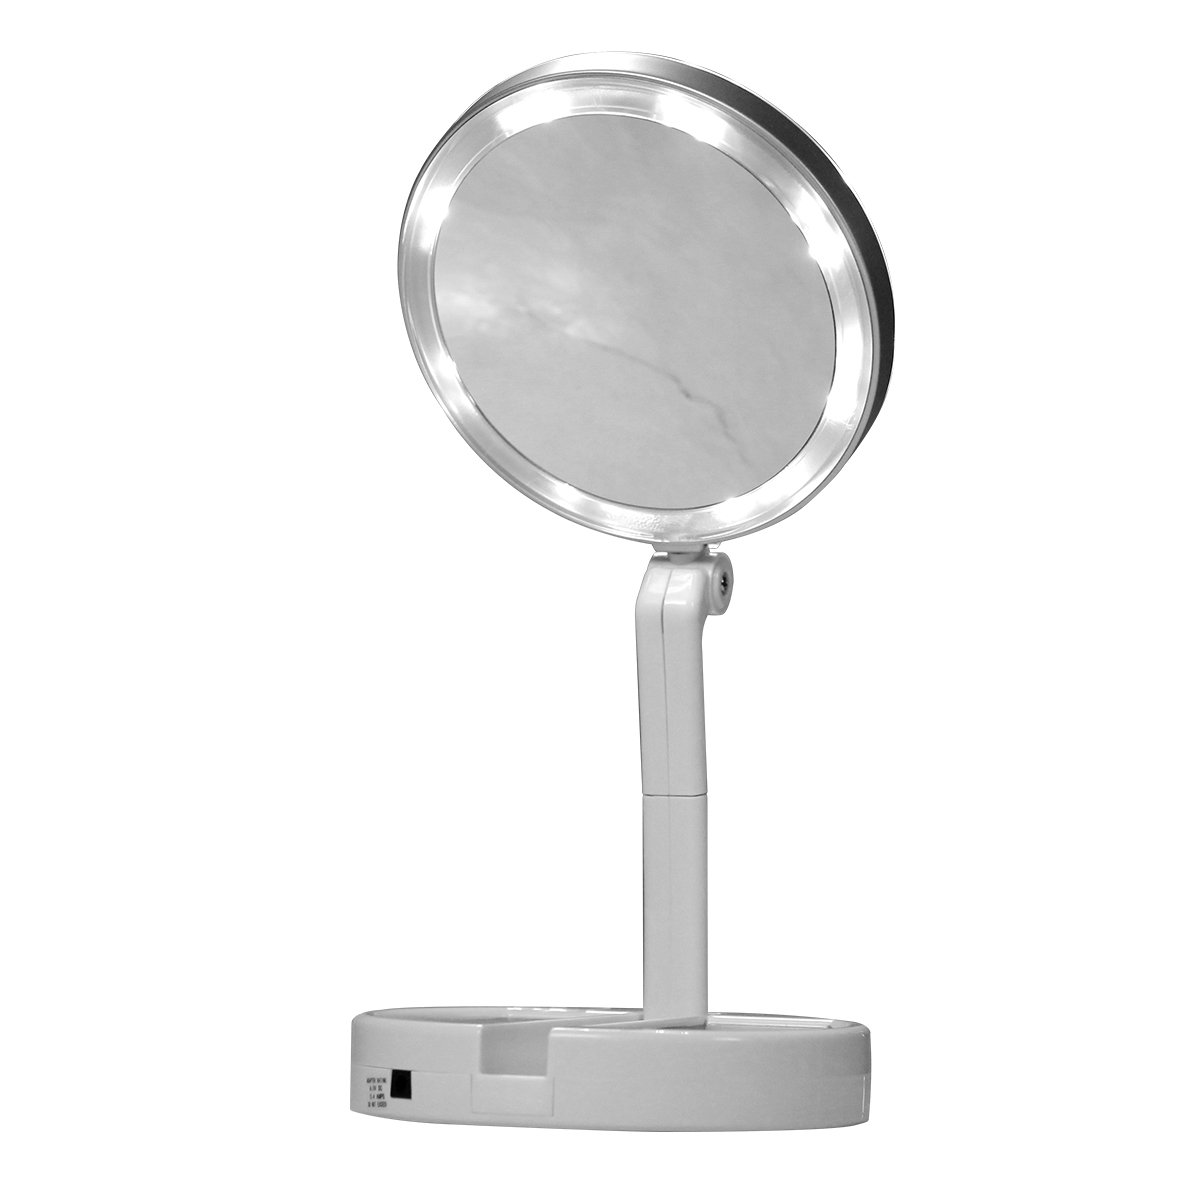 JML Flawless Folding Mirror - The take-anywhere LED magnifying mirror f0qff50100000001